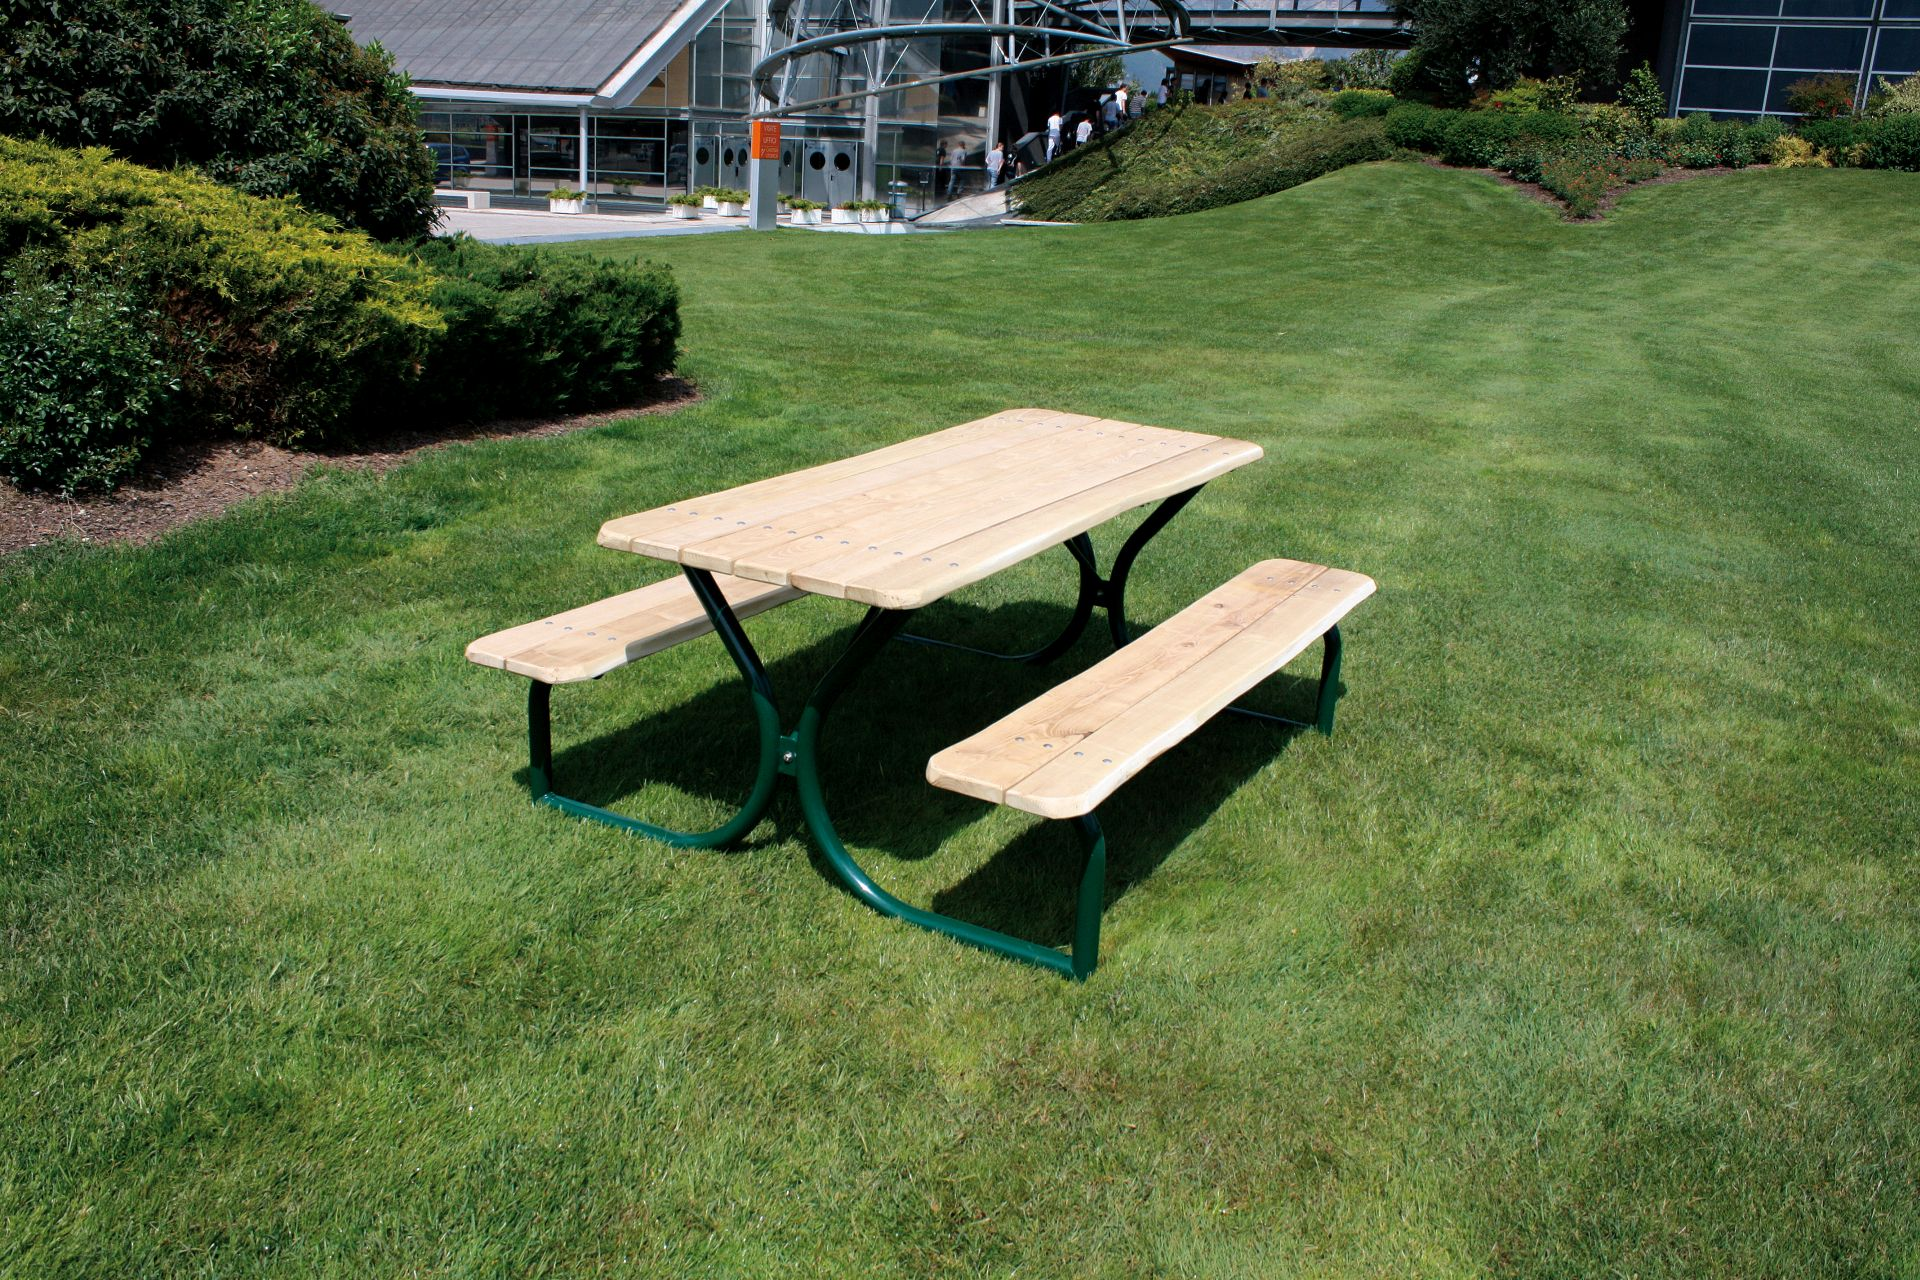 Holzhof COUNTRY (FACILITIES IN ROBINIA WOOD) Table and benches in robinia without backrest, with varnished green